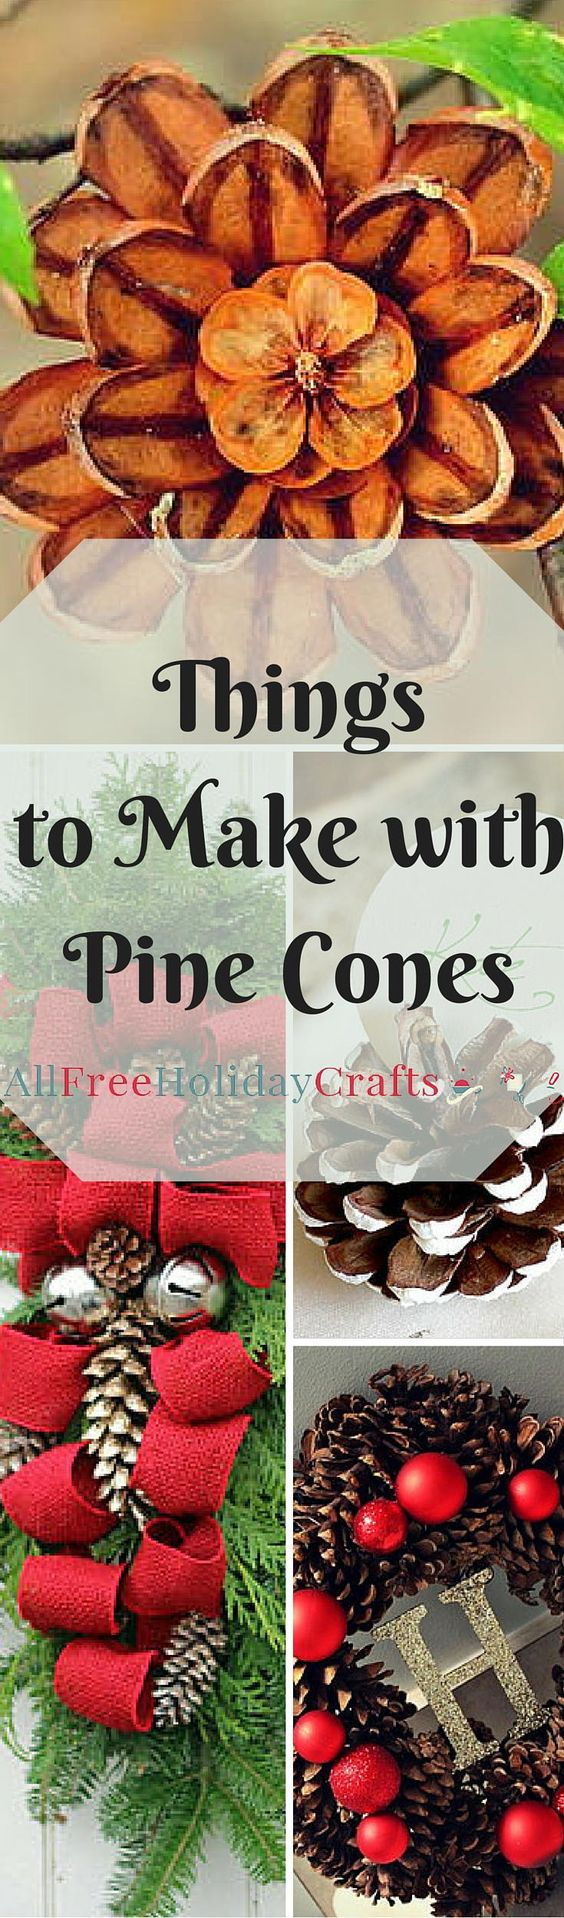 pine cone crafts things to make and pine cones on pinterest